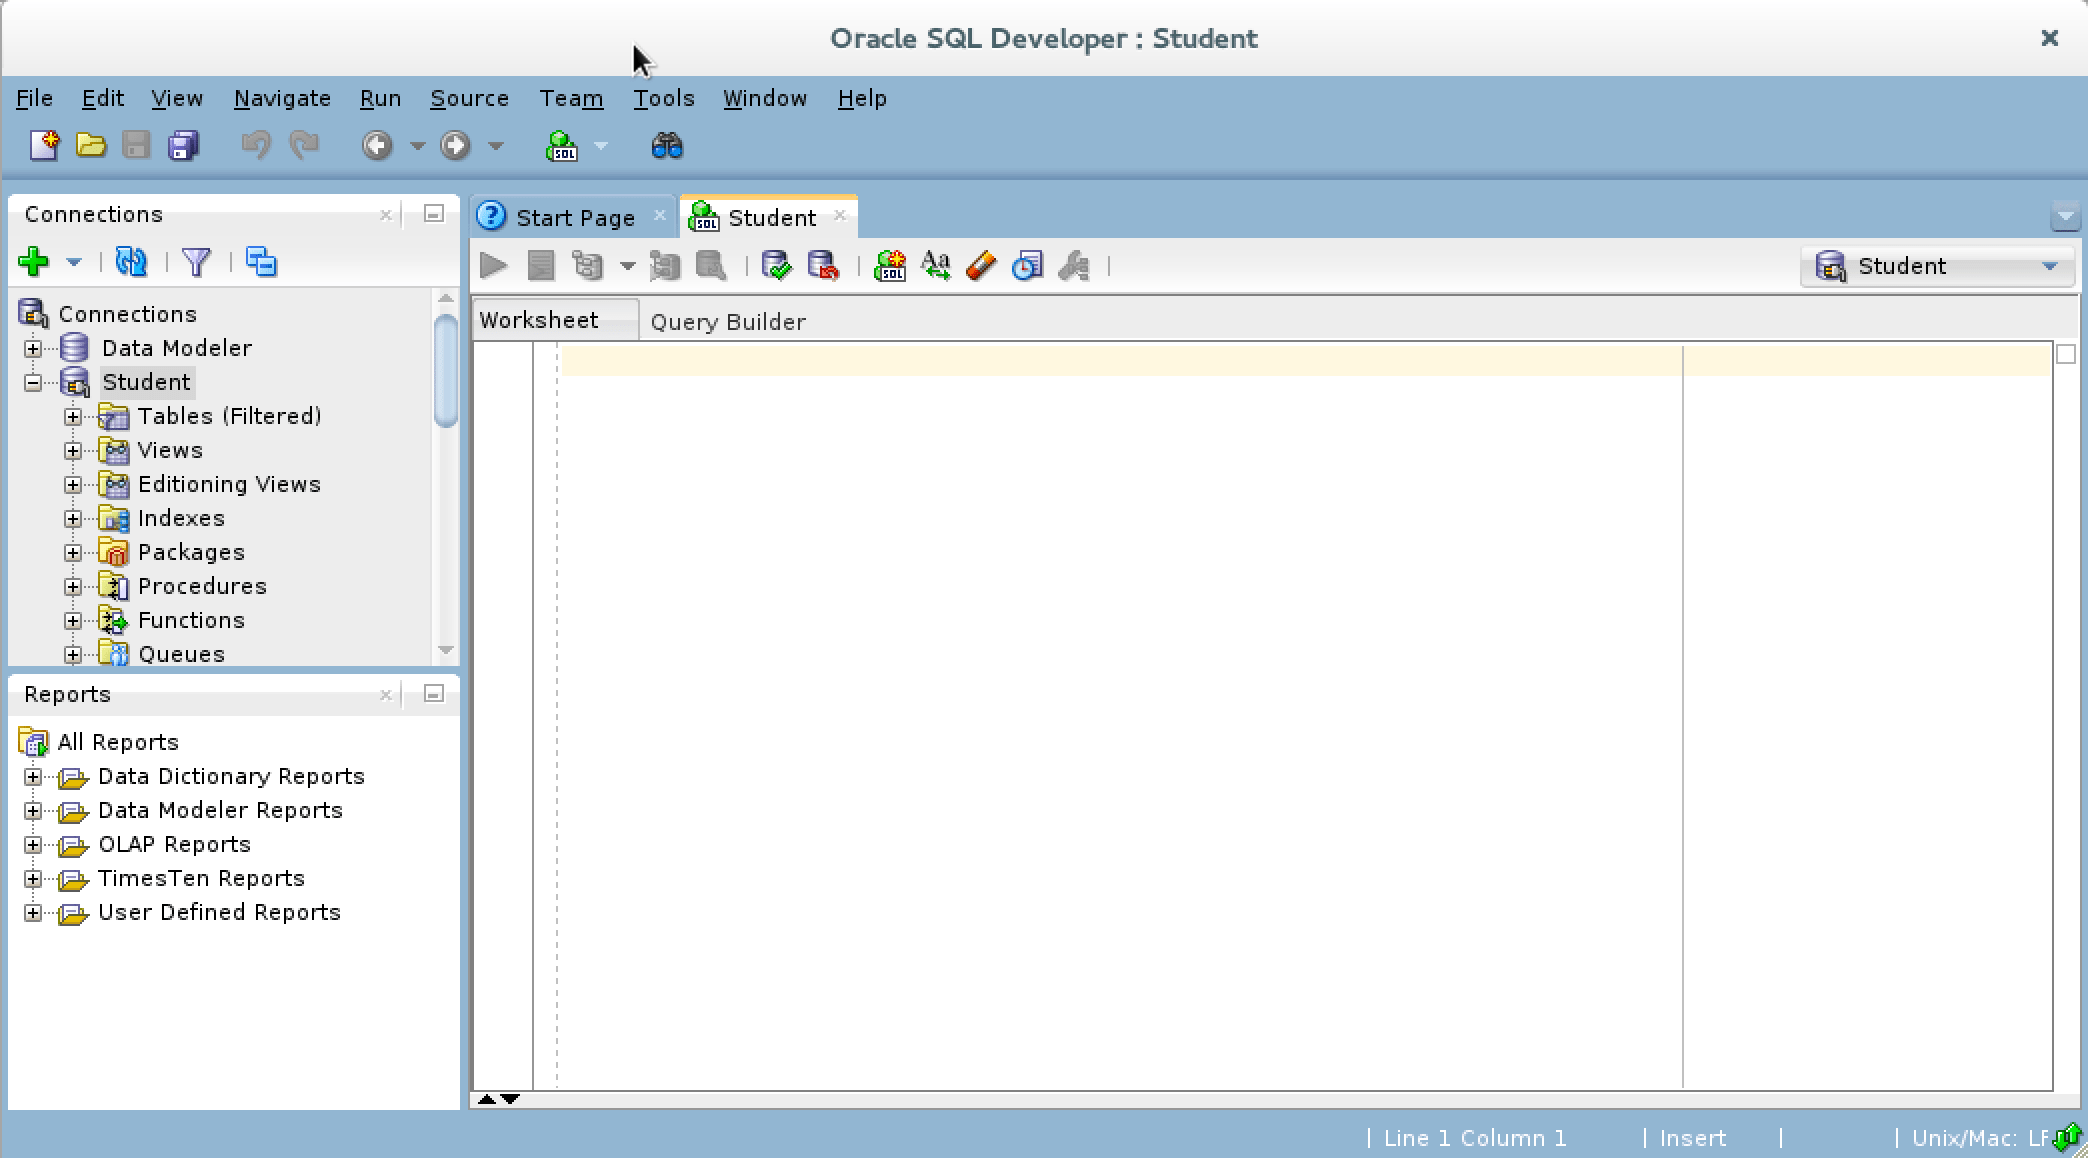 How To Run Function In Oracle Sql Developer